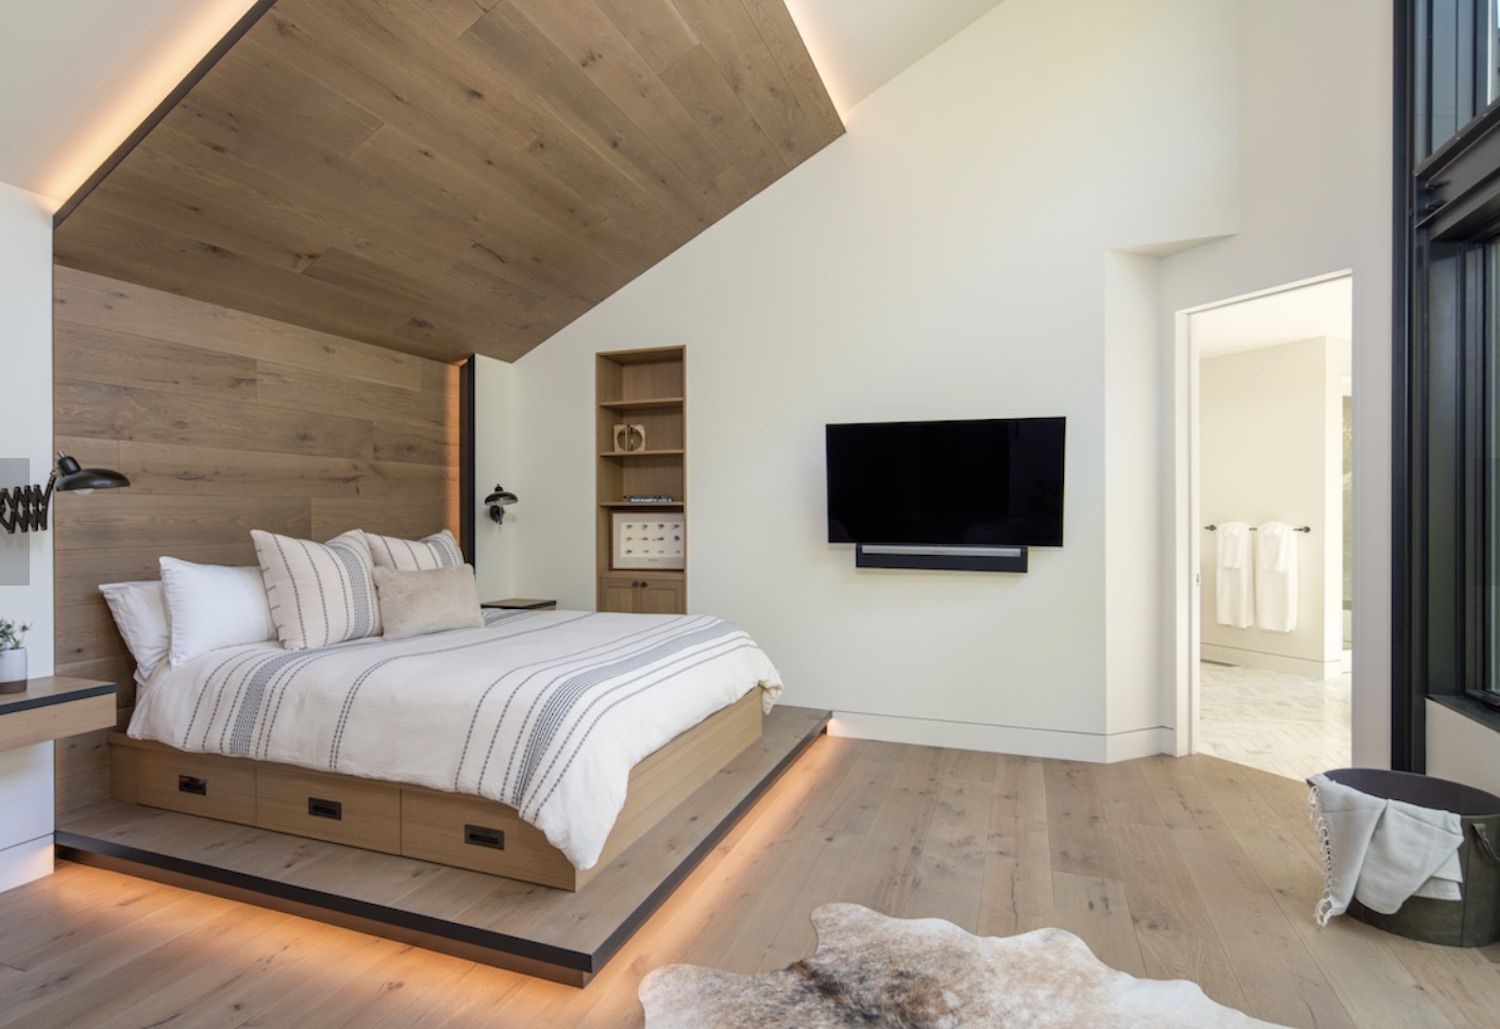 modern bedroom with wooden light accent wall and bed frame, wooden floor, open floorplan